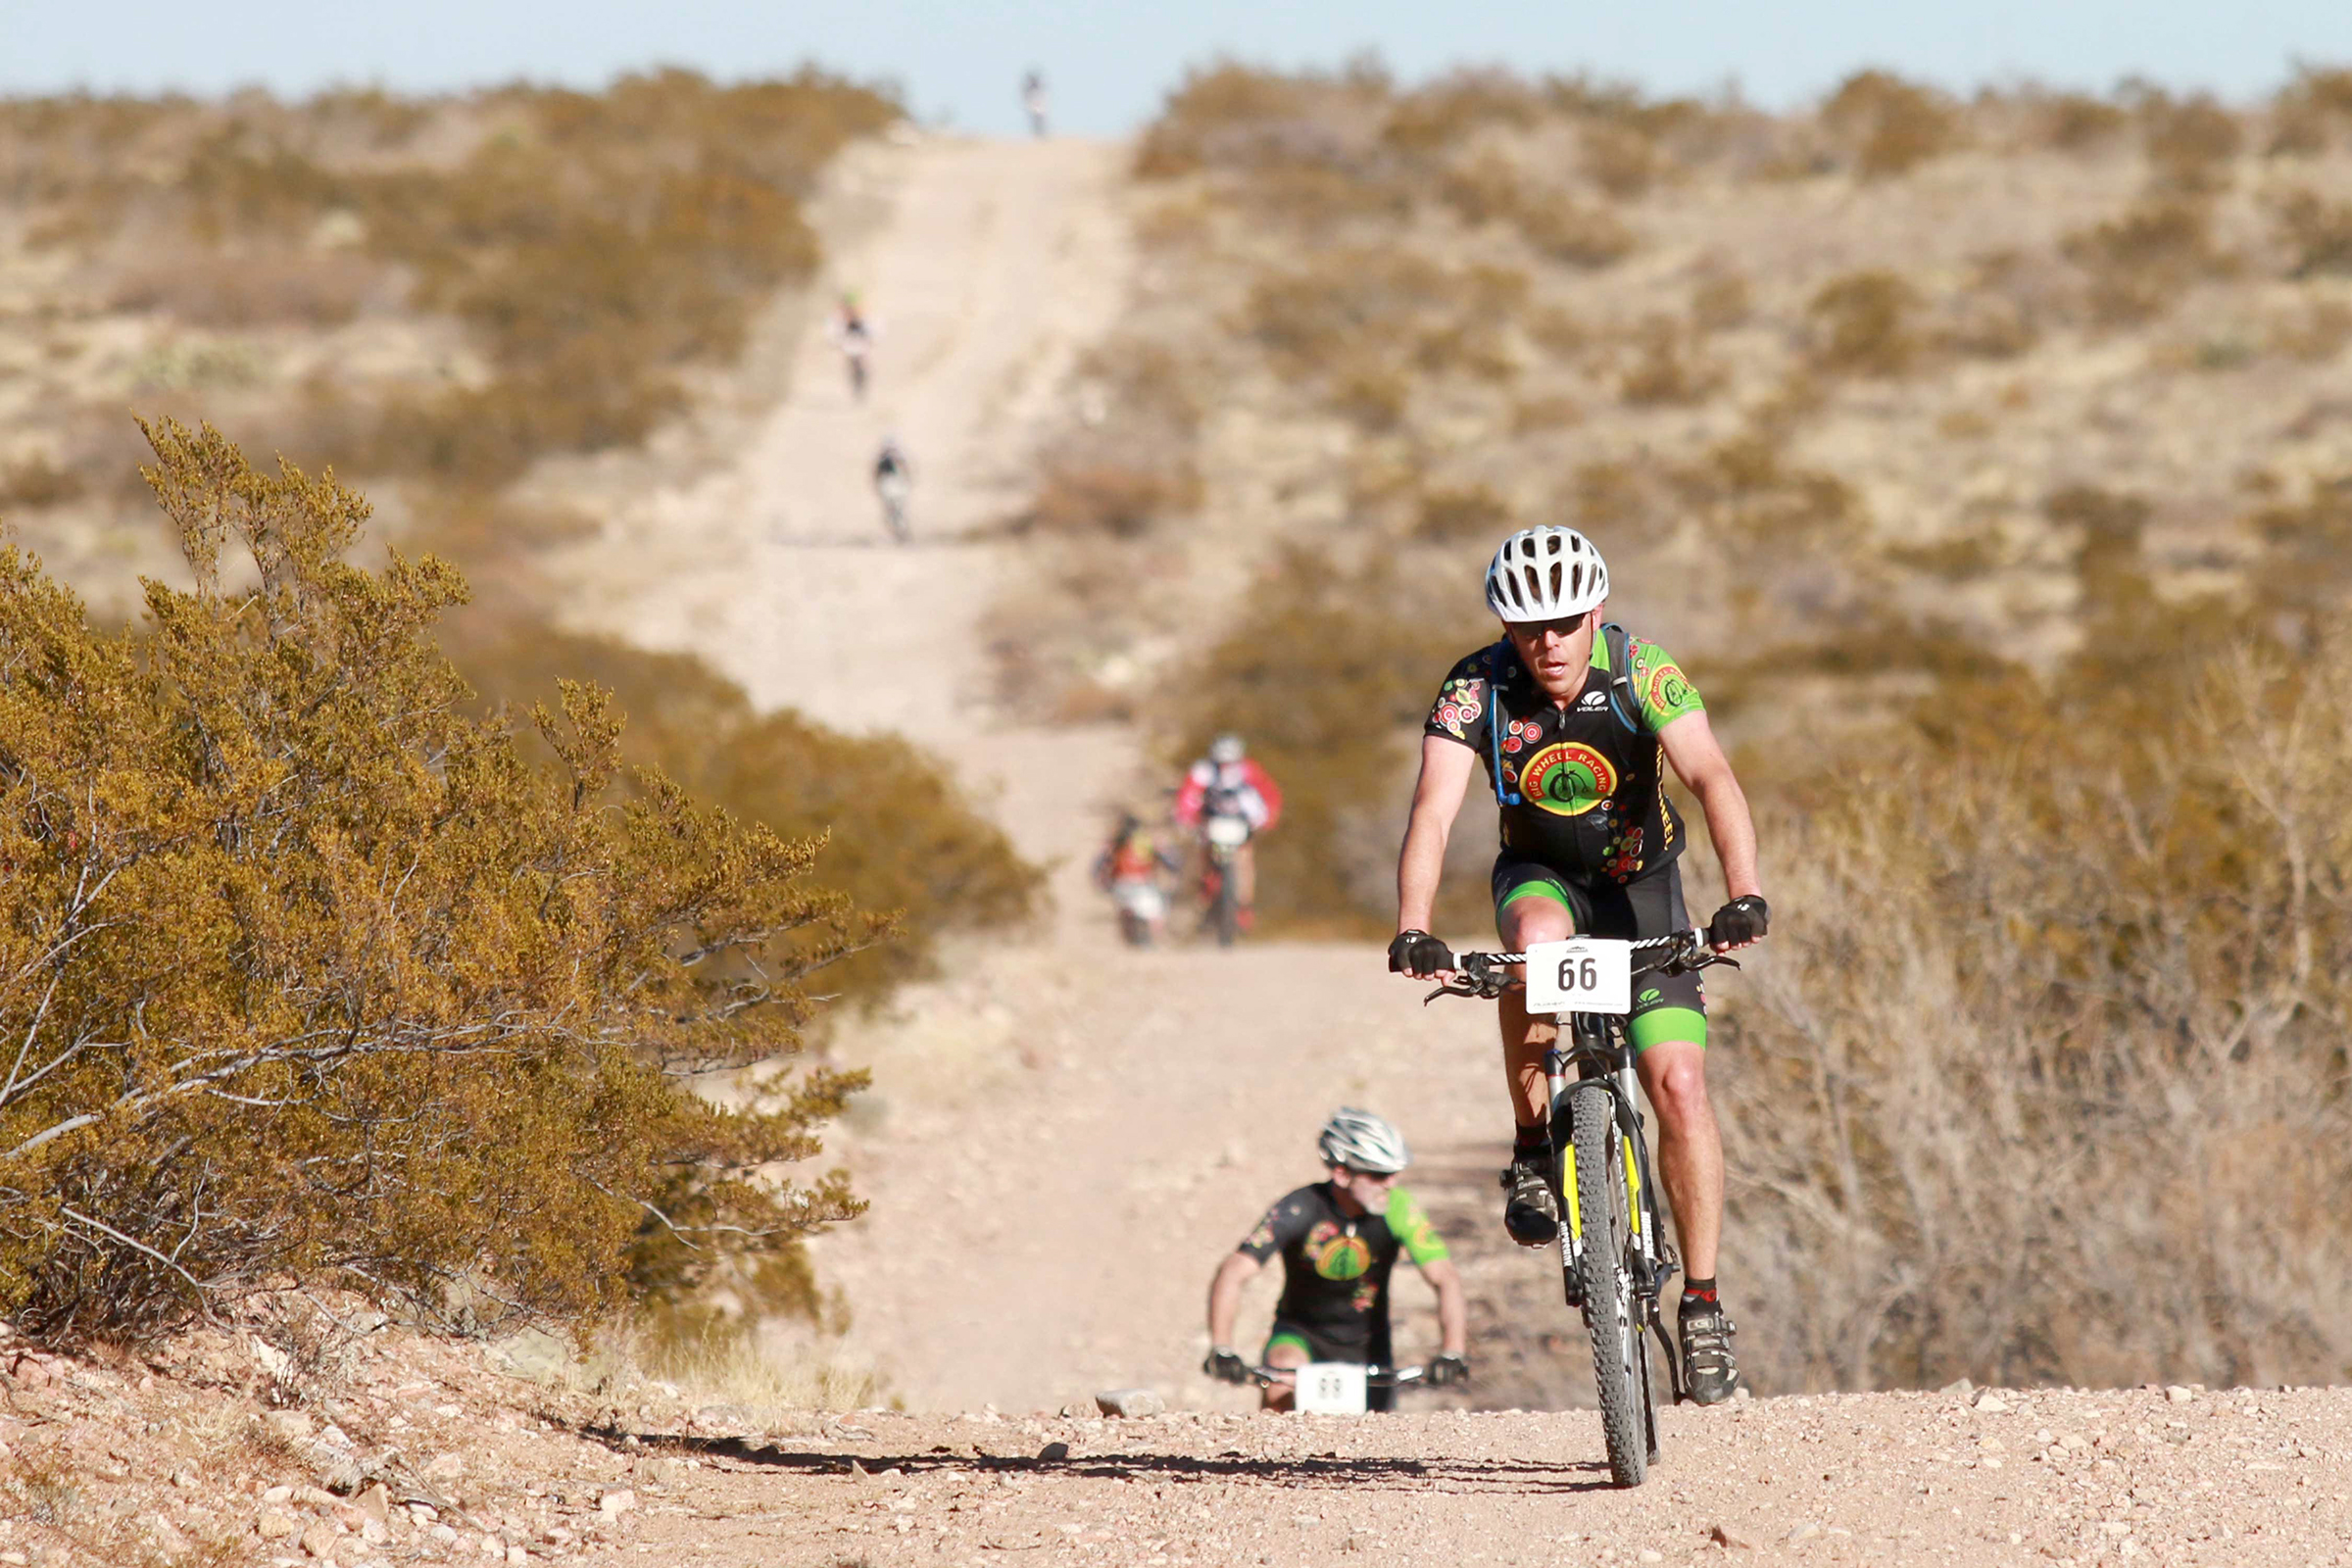 Cyclists participate in the 50-mile Puzzler Endurance Mountain Bike Race at Bowen Ranch in El Paso, Texas on January 18, 2015.